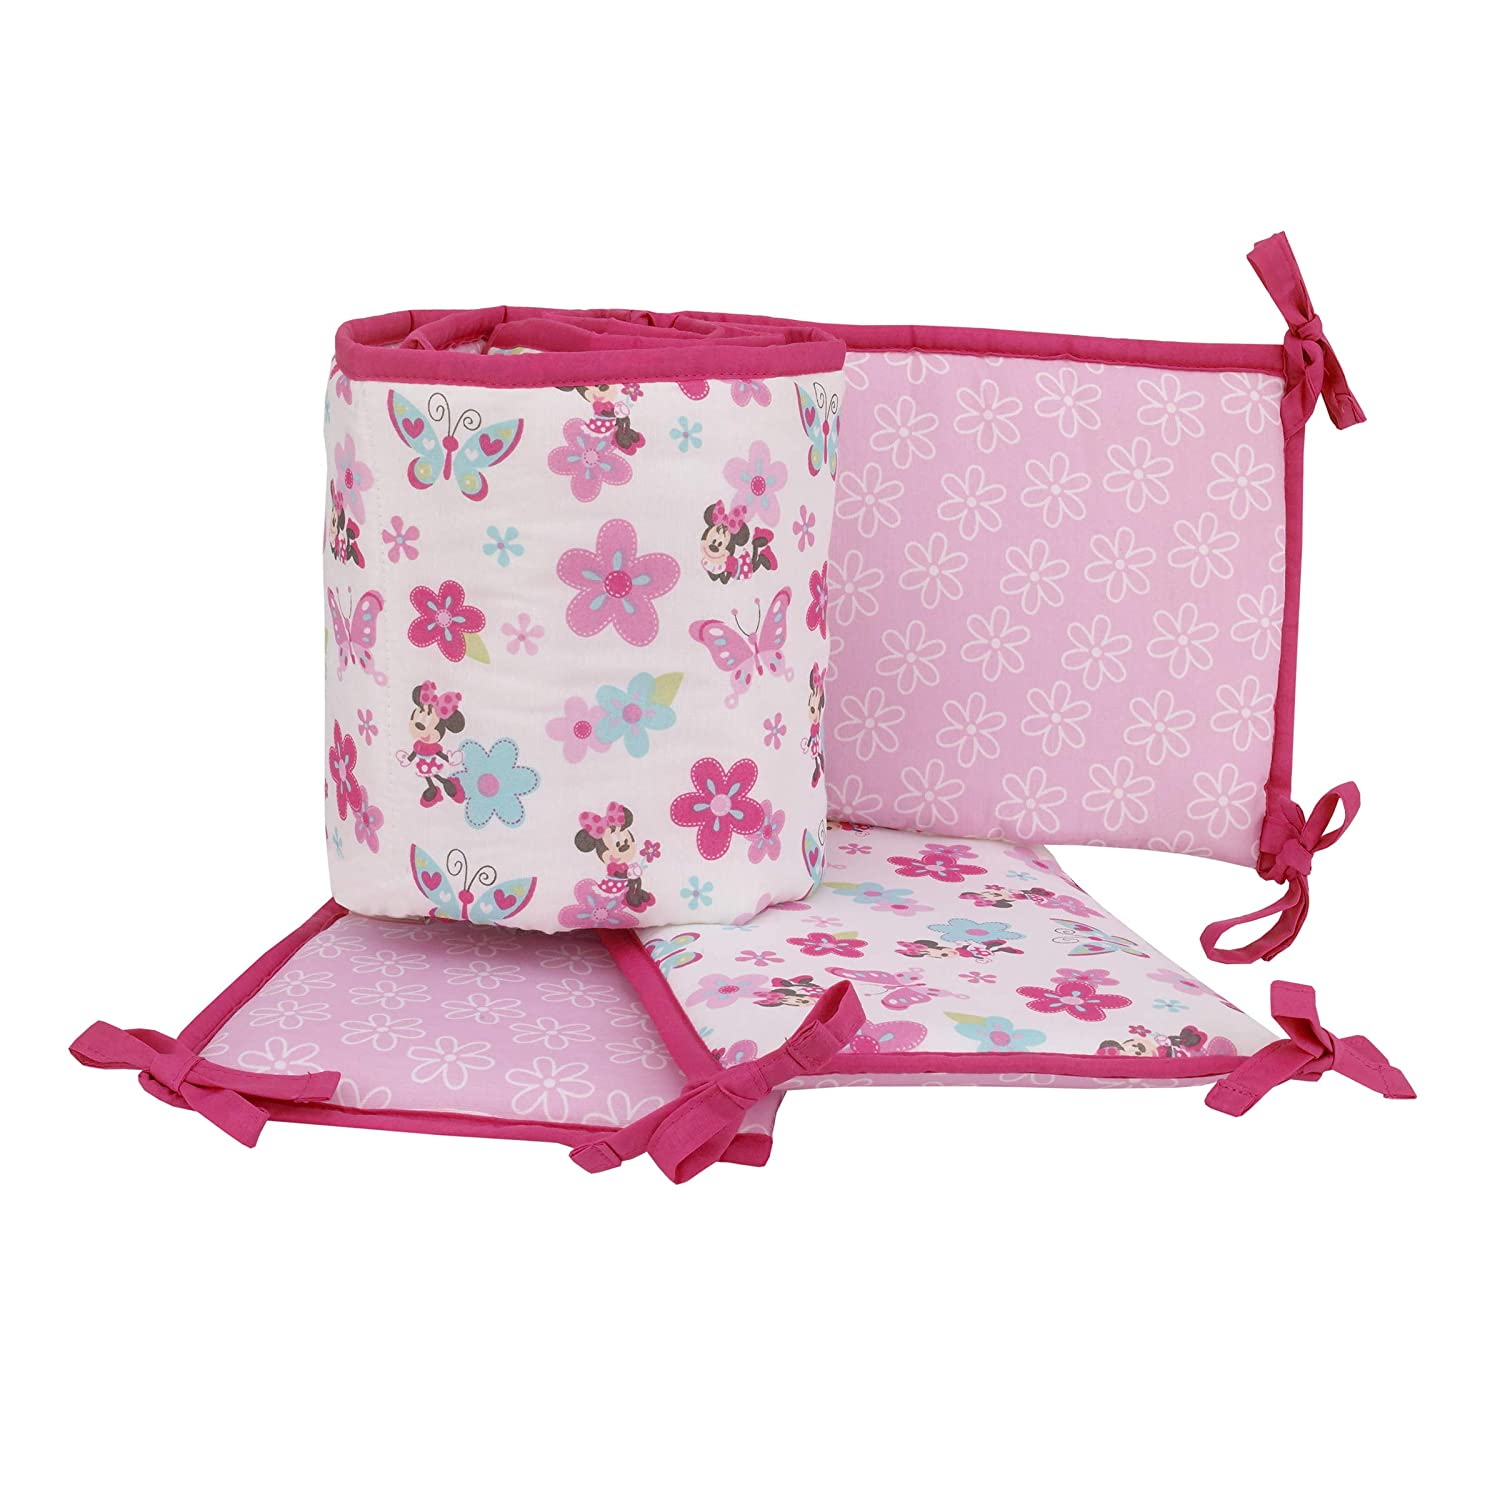 Disney's Minnie Mouse Portable Reversible Bumper Pad, 4 Piece Minnie and Pink Flowers Portable Pads, Minnie Pad, Protector de Cuna